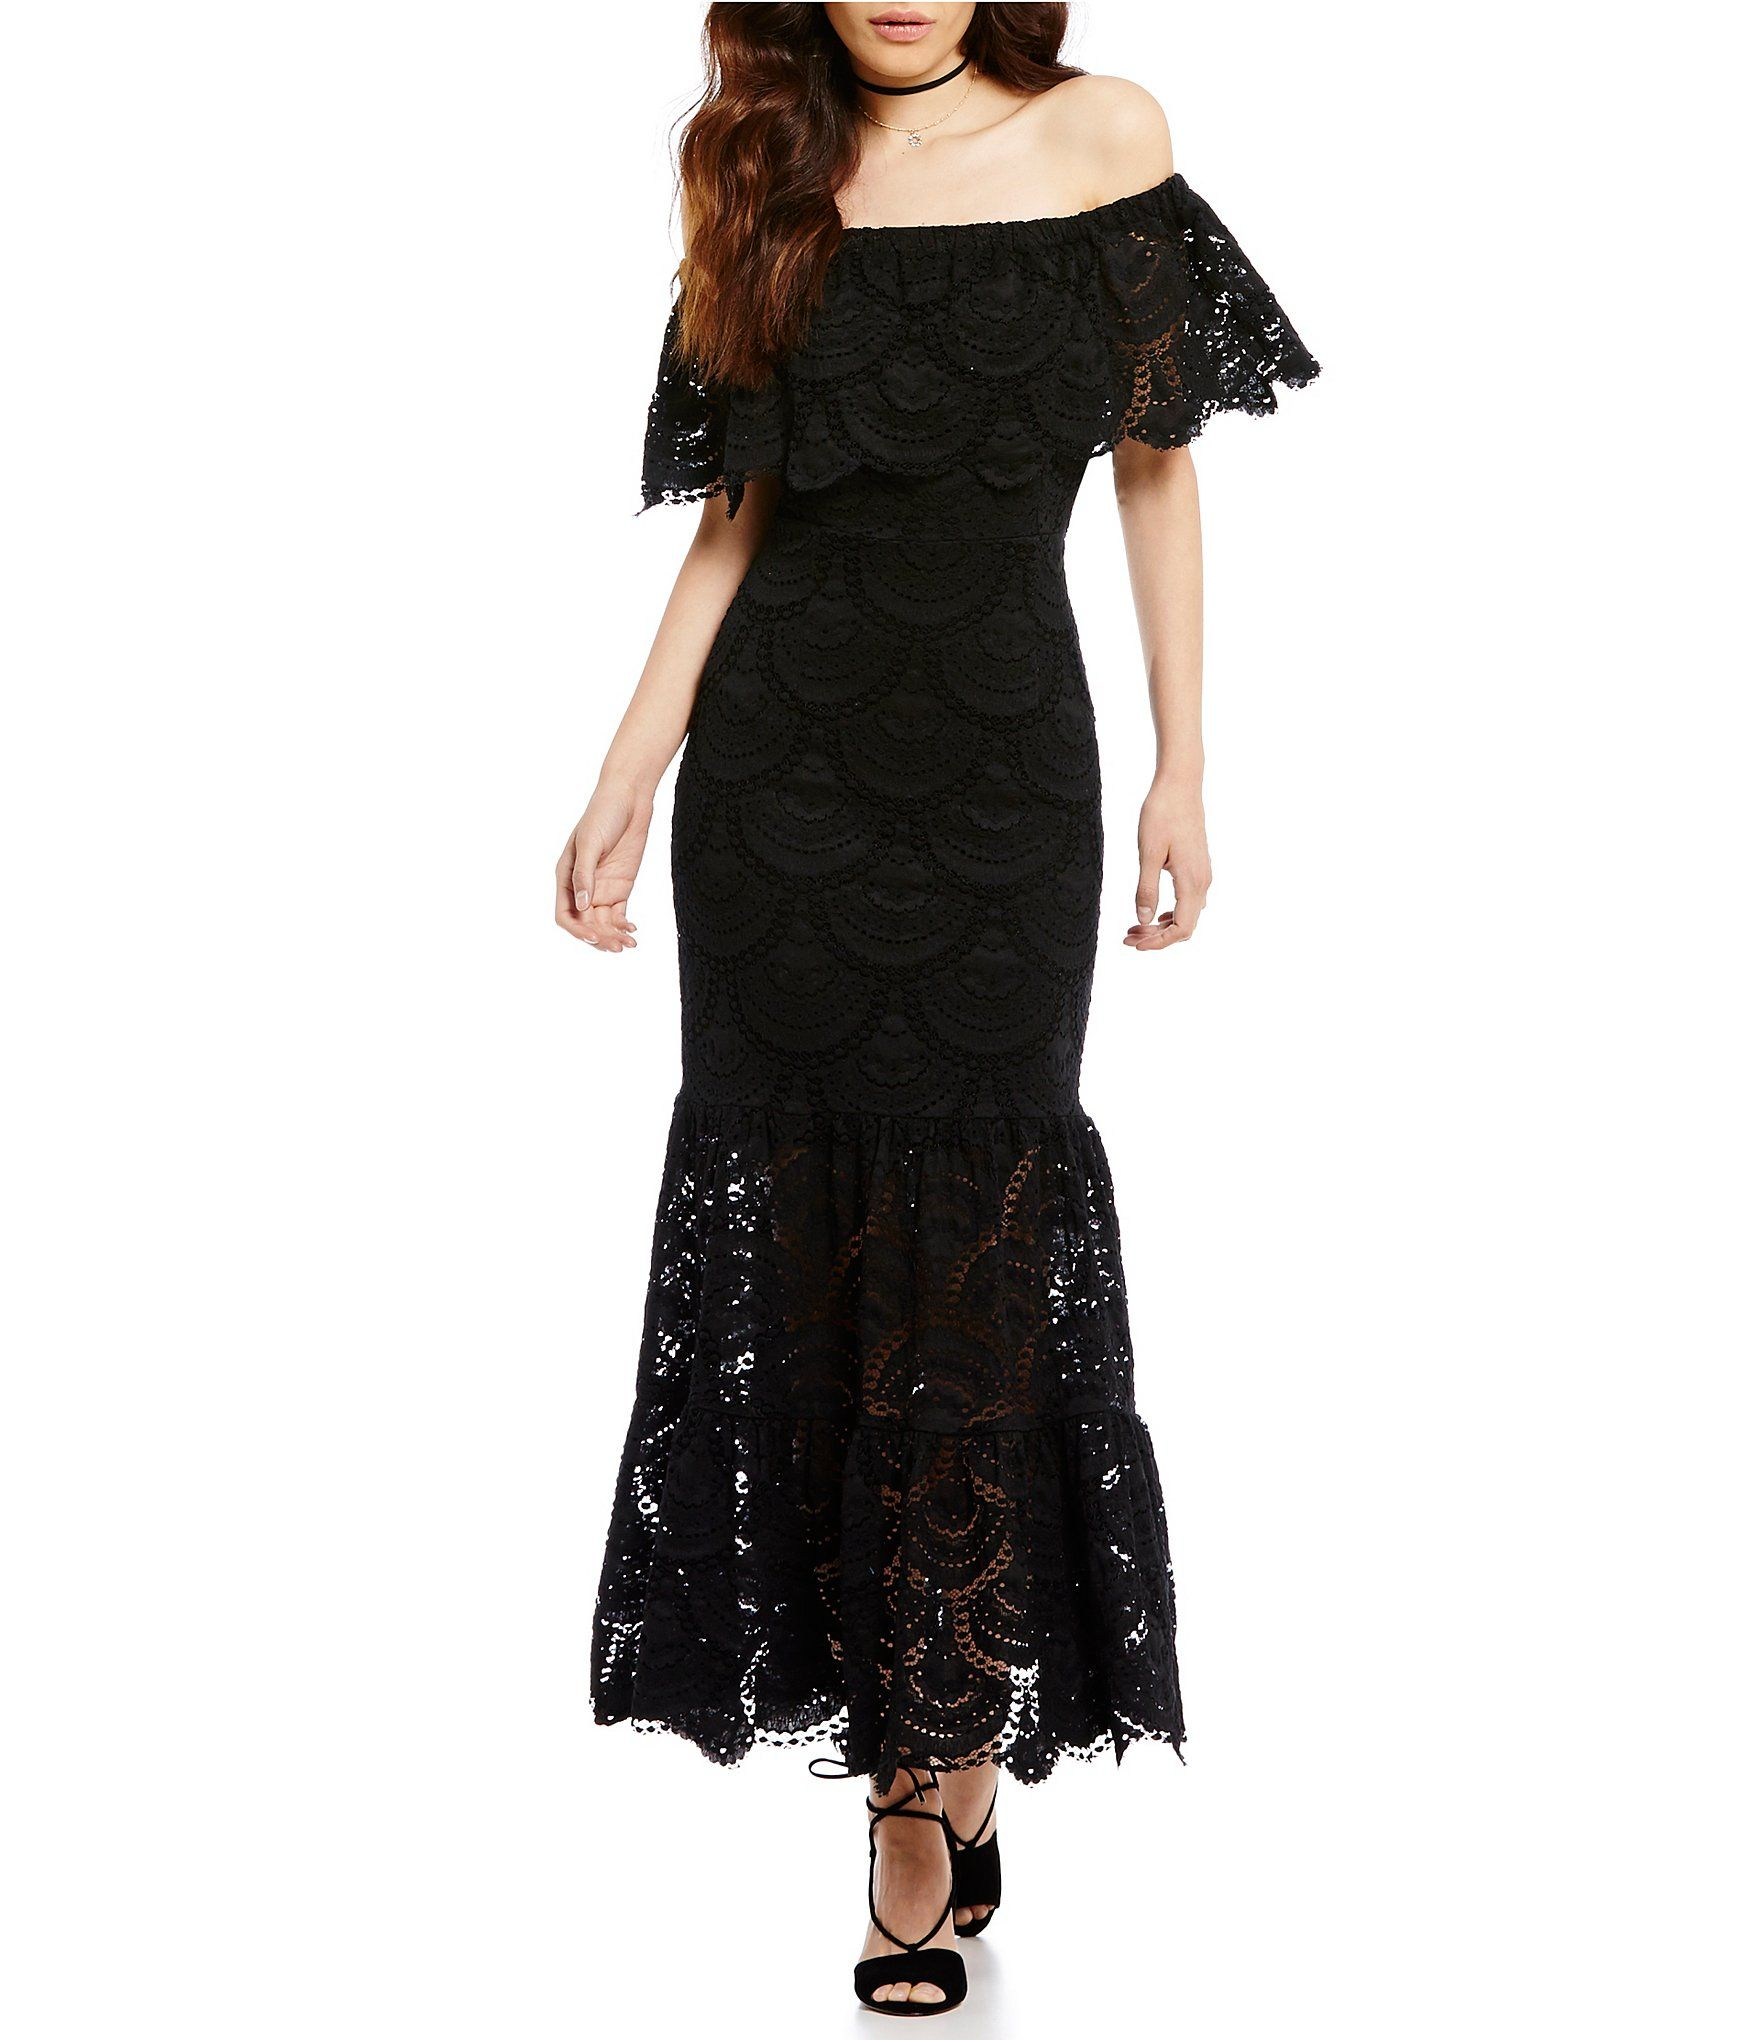 a4b595e25222 Shop for Gianni Bini Reina Off-the-Shoulder Short Sleeve Lace Maxi Dress at  Dillards.com. Visit Dillards.com to find clothing, accessories, shoes, ...